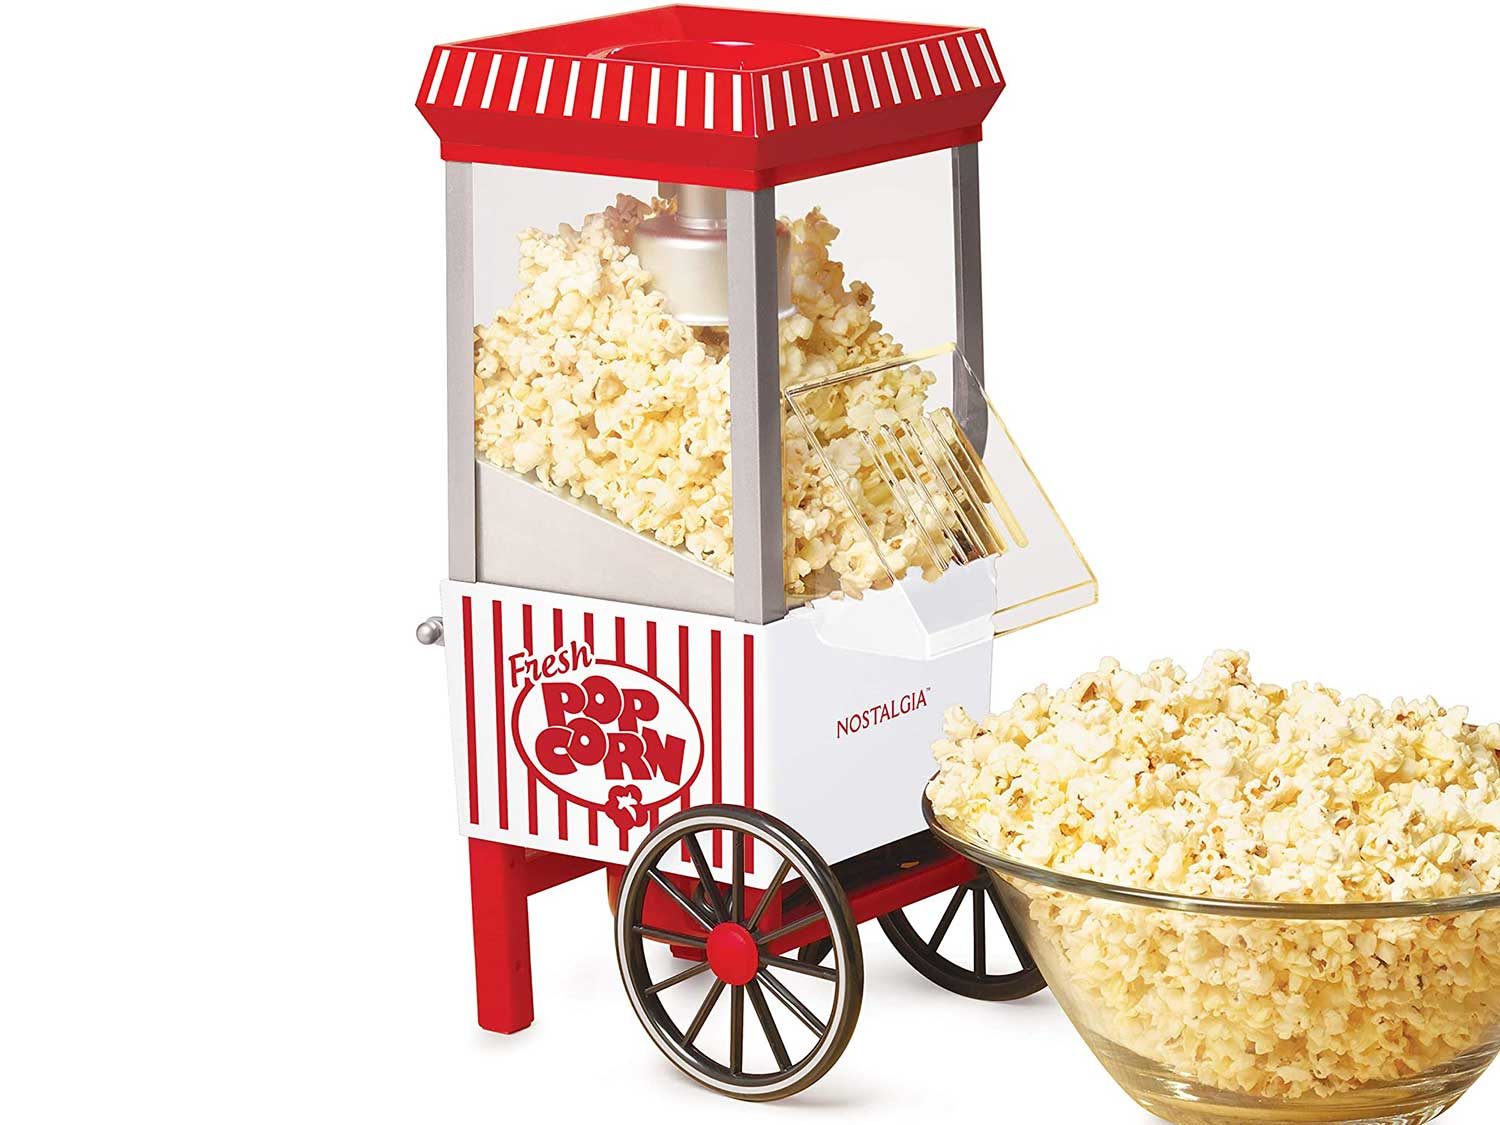 Nostalgia OFP521 Vintage Healthy Hot-Air Tabletop Popcorn Maker, Makes 12 Cups, with Kernel Measuring Scoop, Oil Free, Perfect for Birthday Parties, Movie Nights – Candy Stripe, White/Red